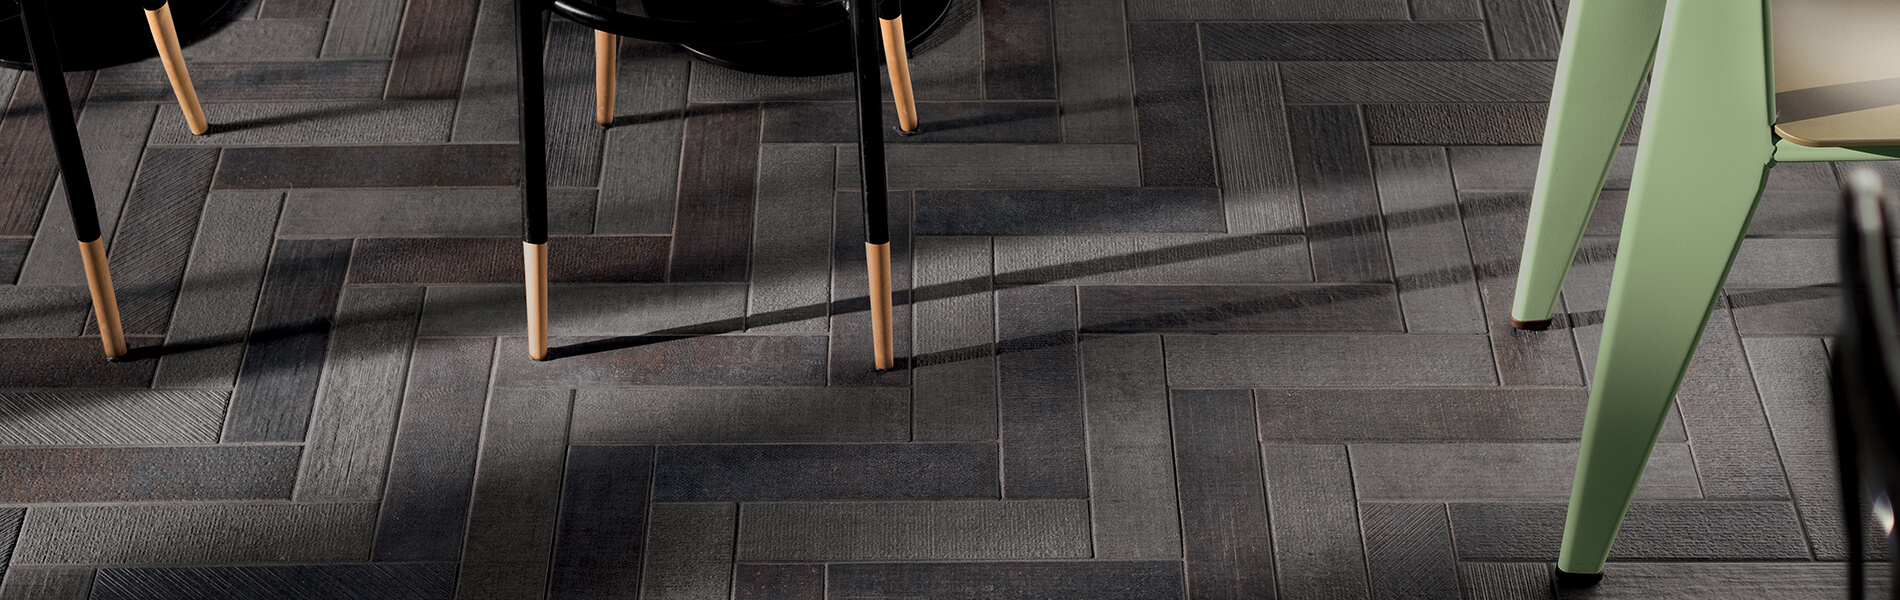 Textile weaves a contemporary style with the simplistic and timeless appeal of woven fabrics and concrete. With a subtle texture and a classic palette, Textile incorporates a fresh air of modernity with the traditional hexagon and plank formats in an easy-care porcelain tile.